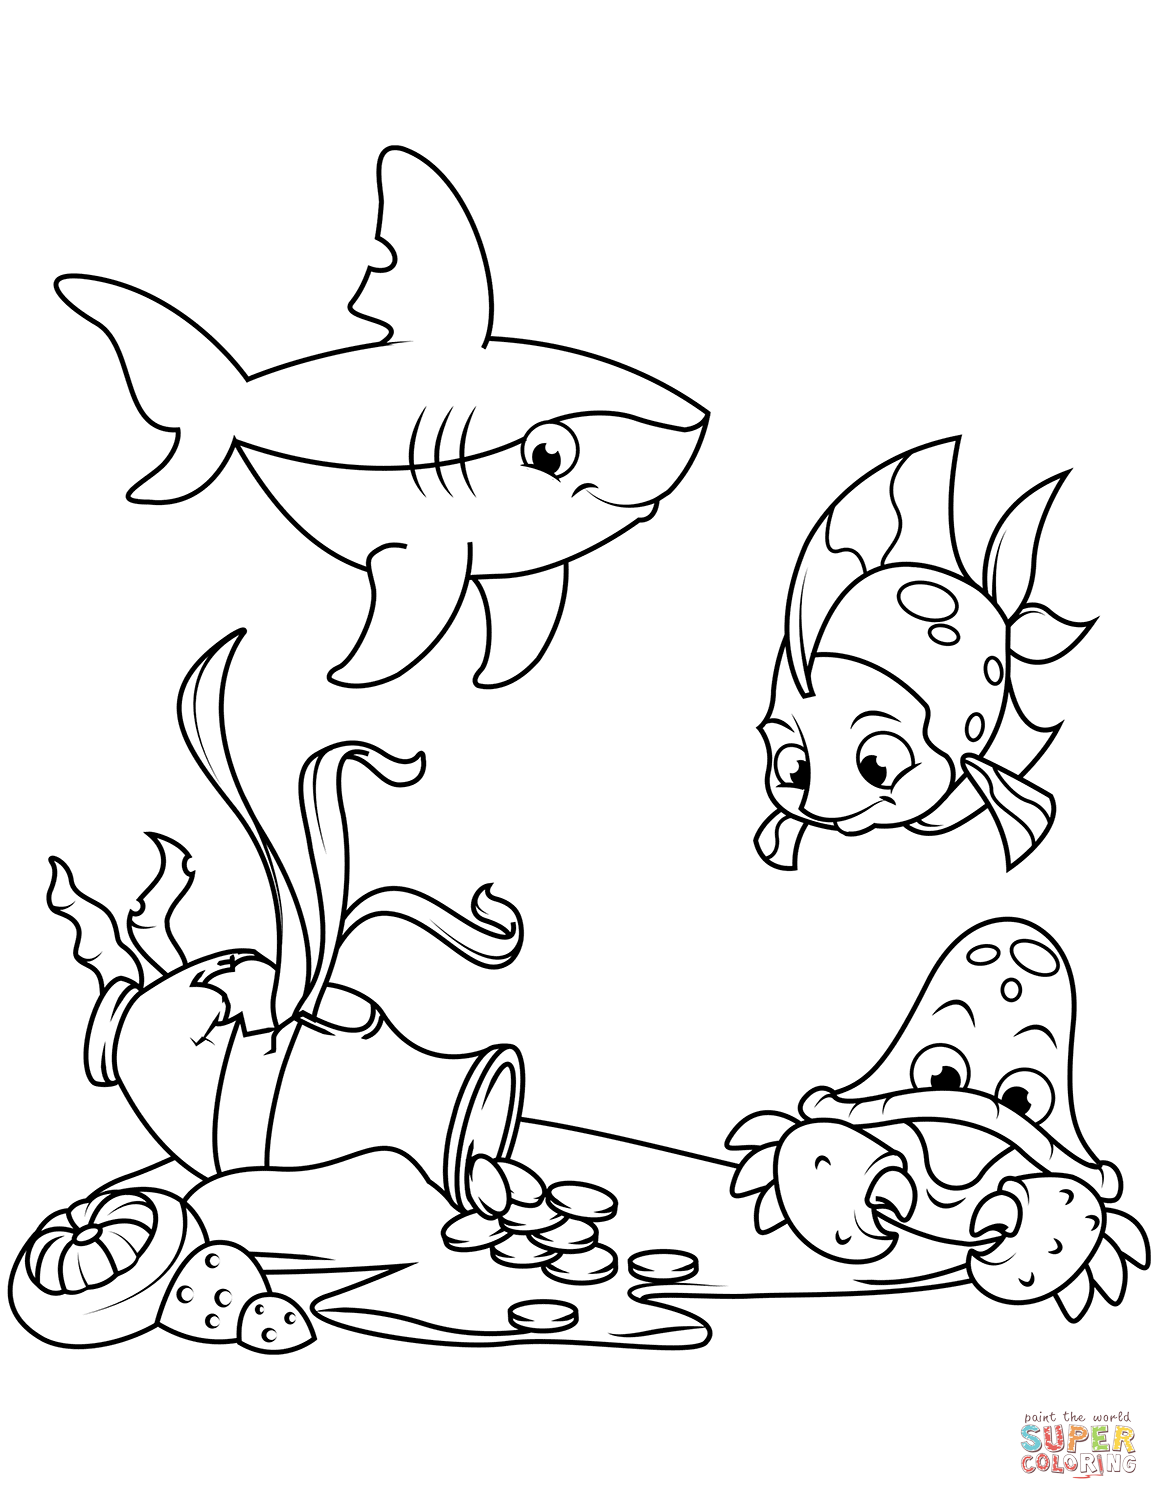 Amphora With Coins On Sea Bottom Coloring Page